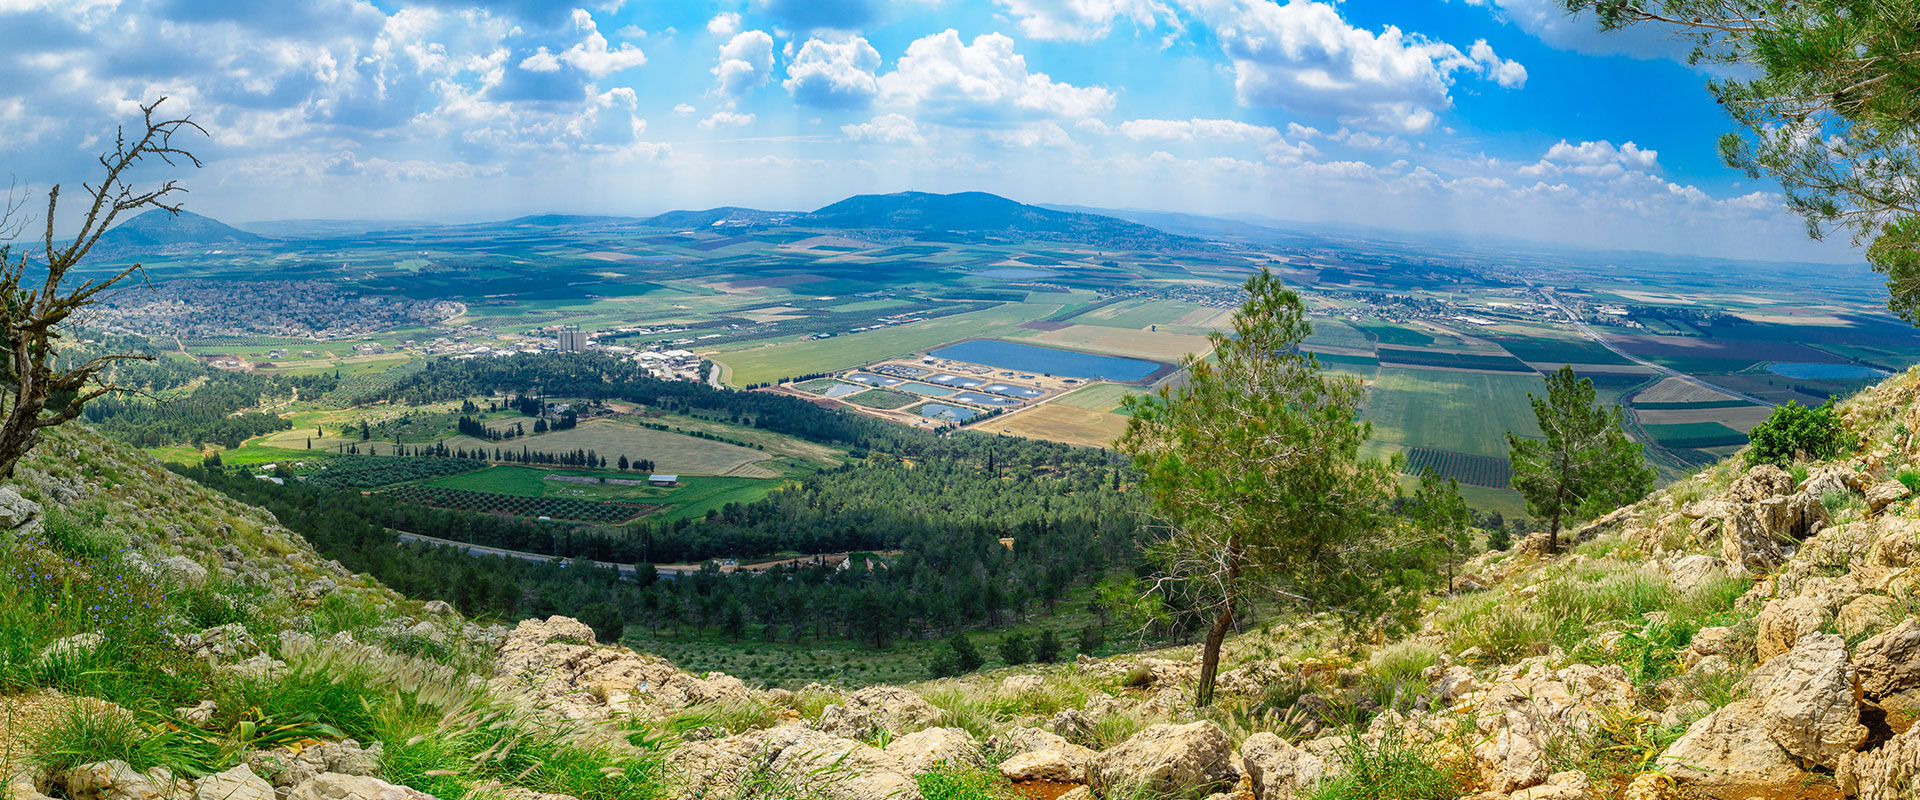 Luxury Israel Vacation Packages, Tours & Travels in Toronto and Canada